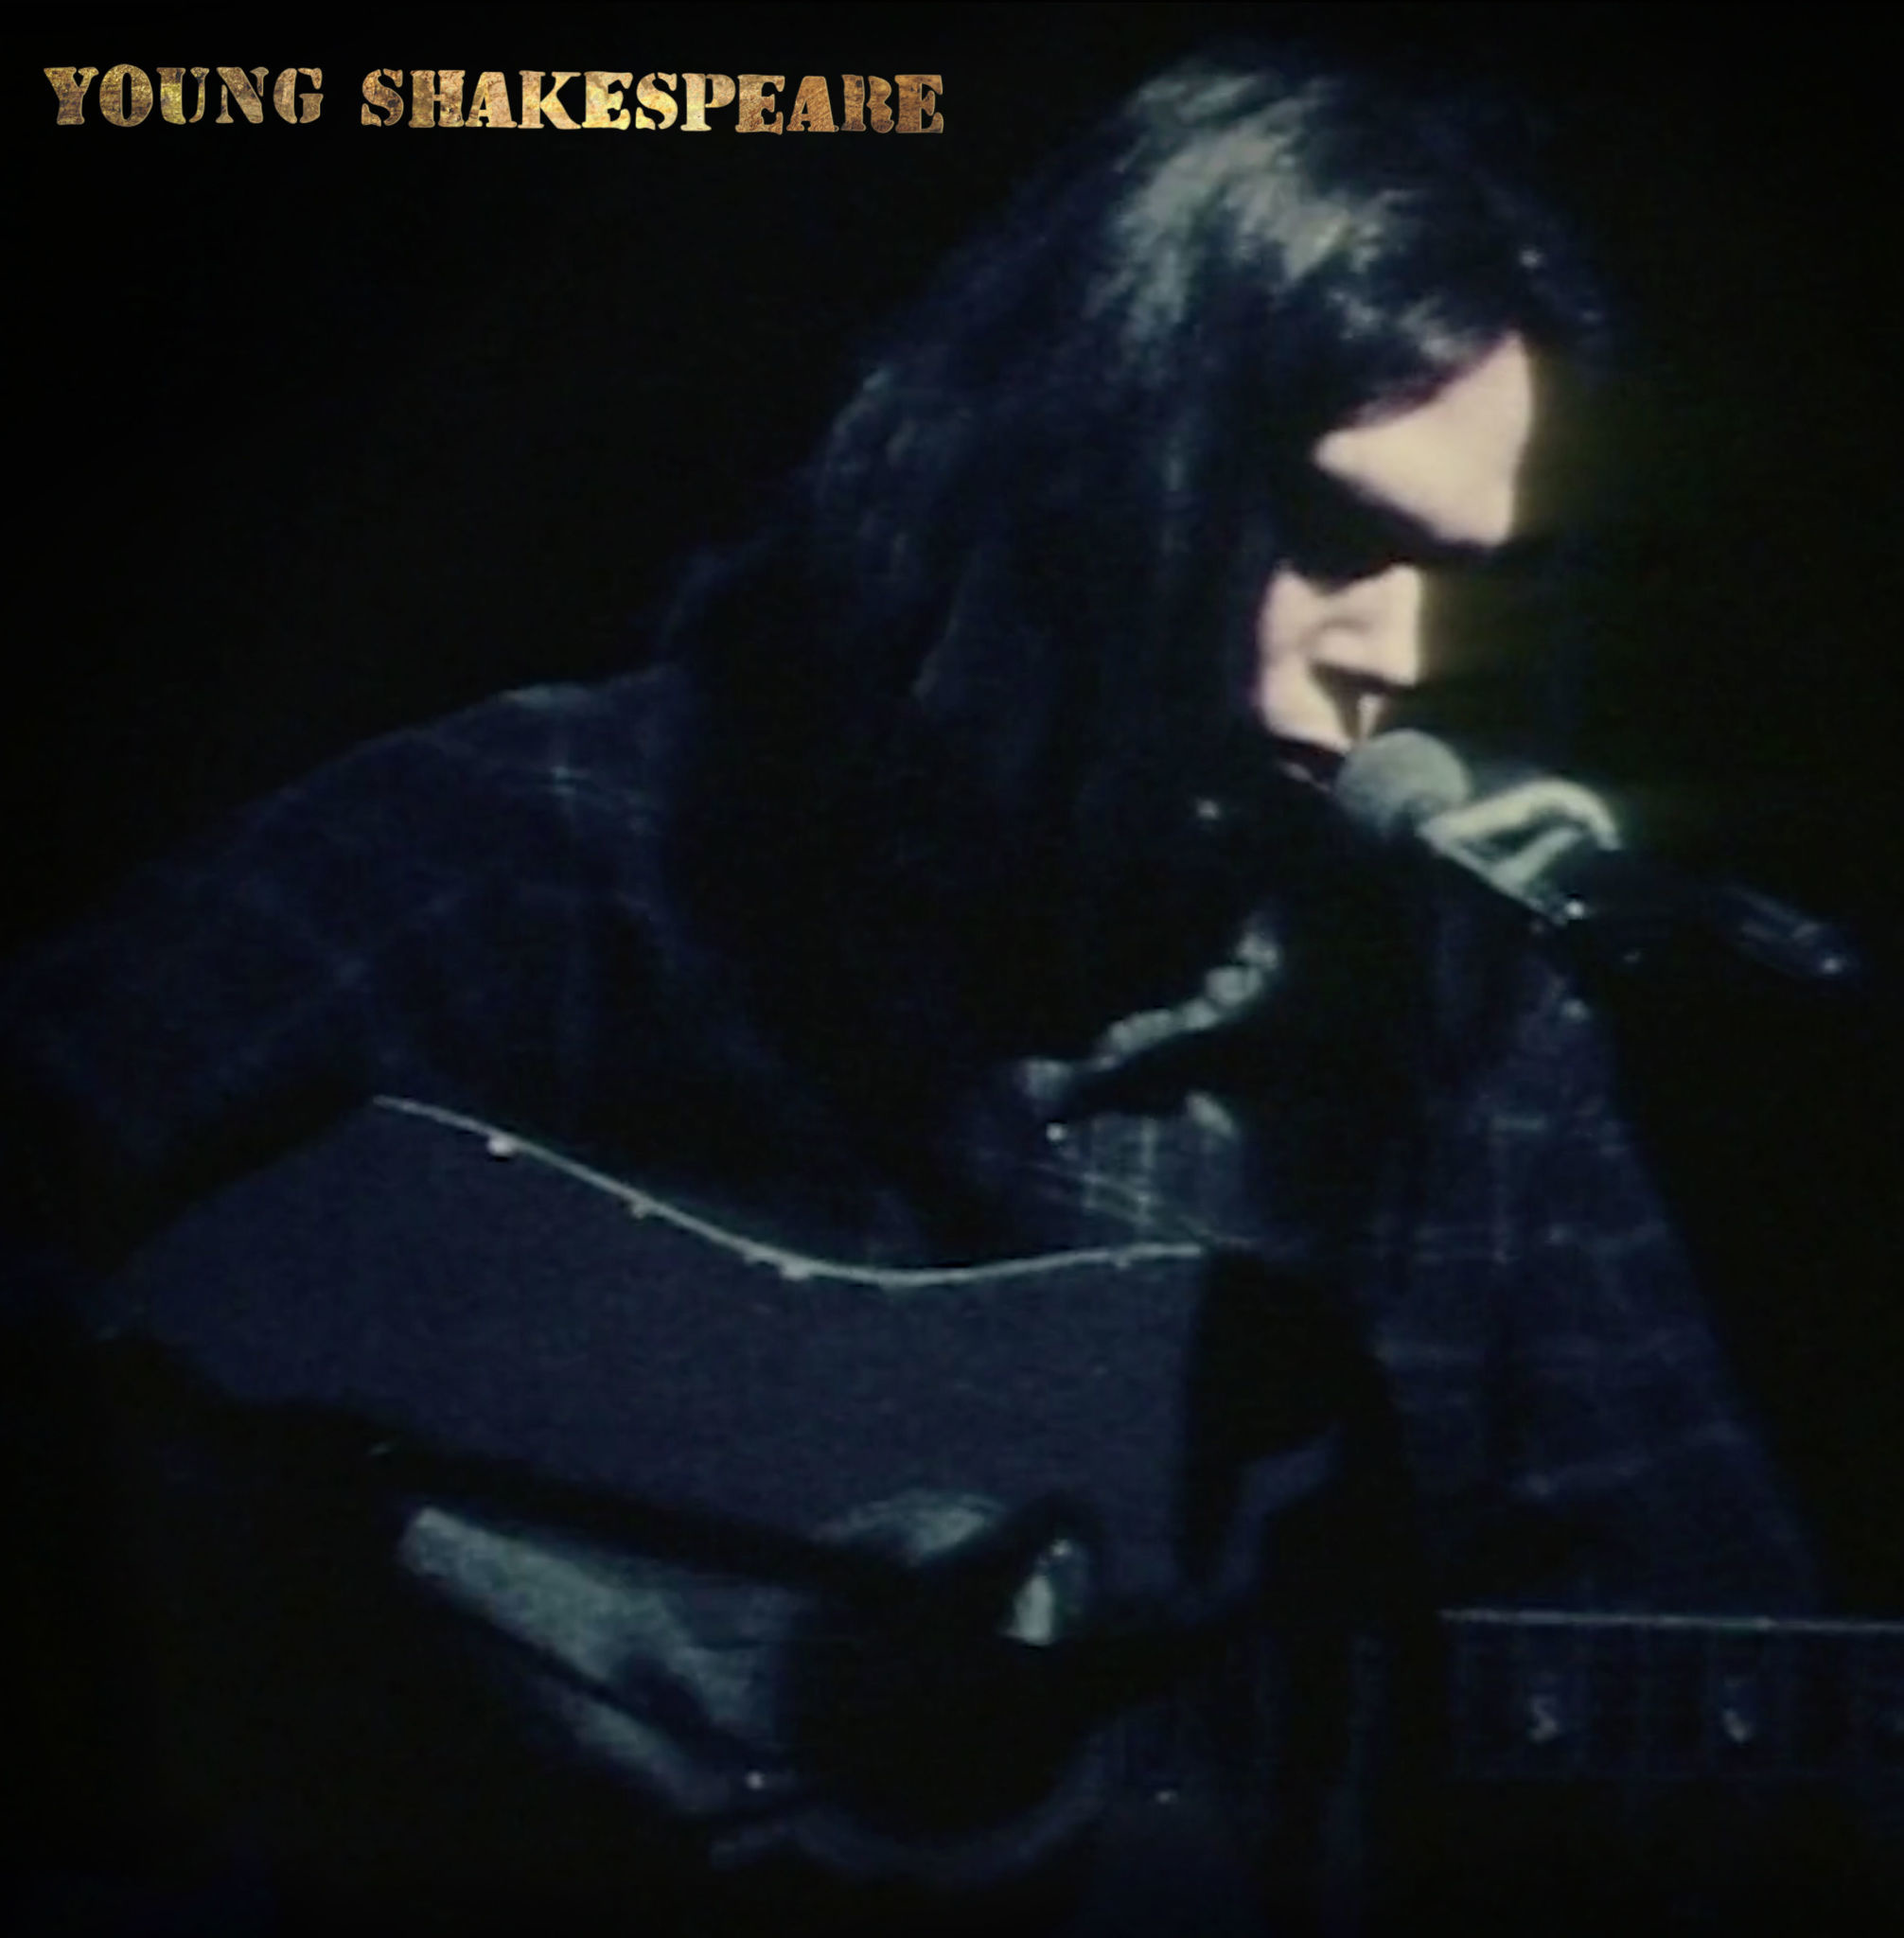 Rock/Pop Neil Young - Young Shakespeare